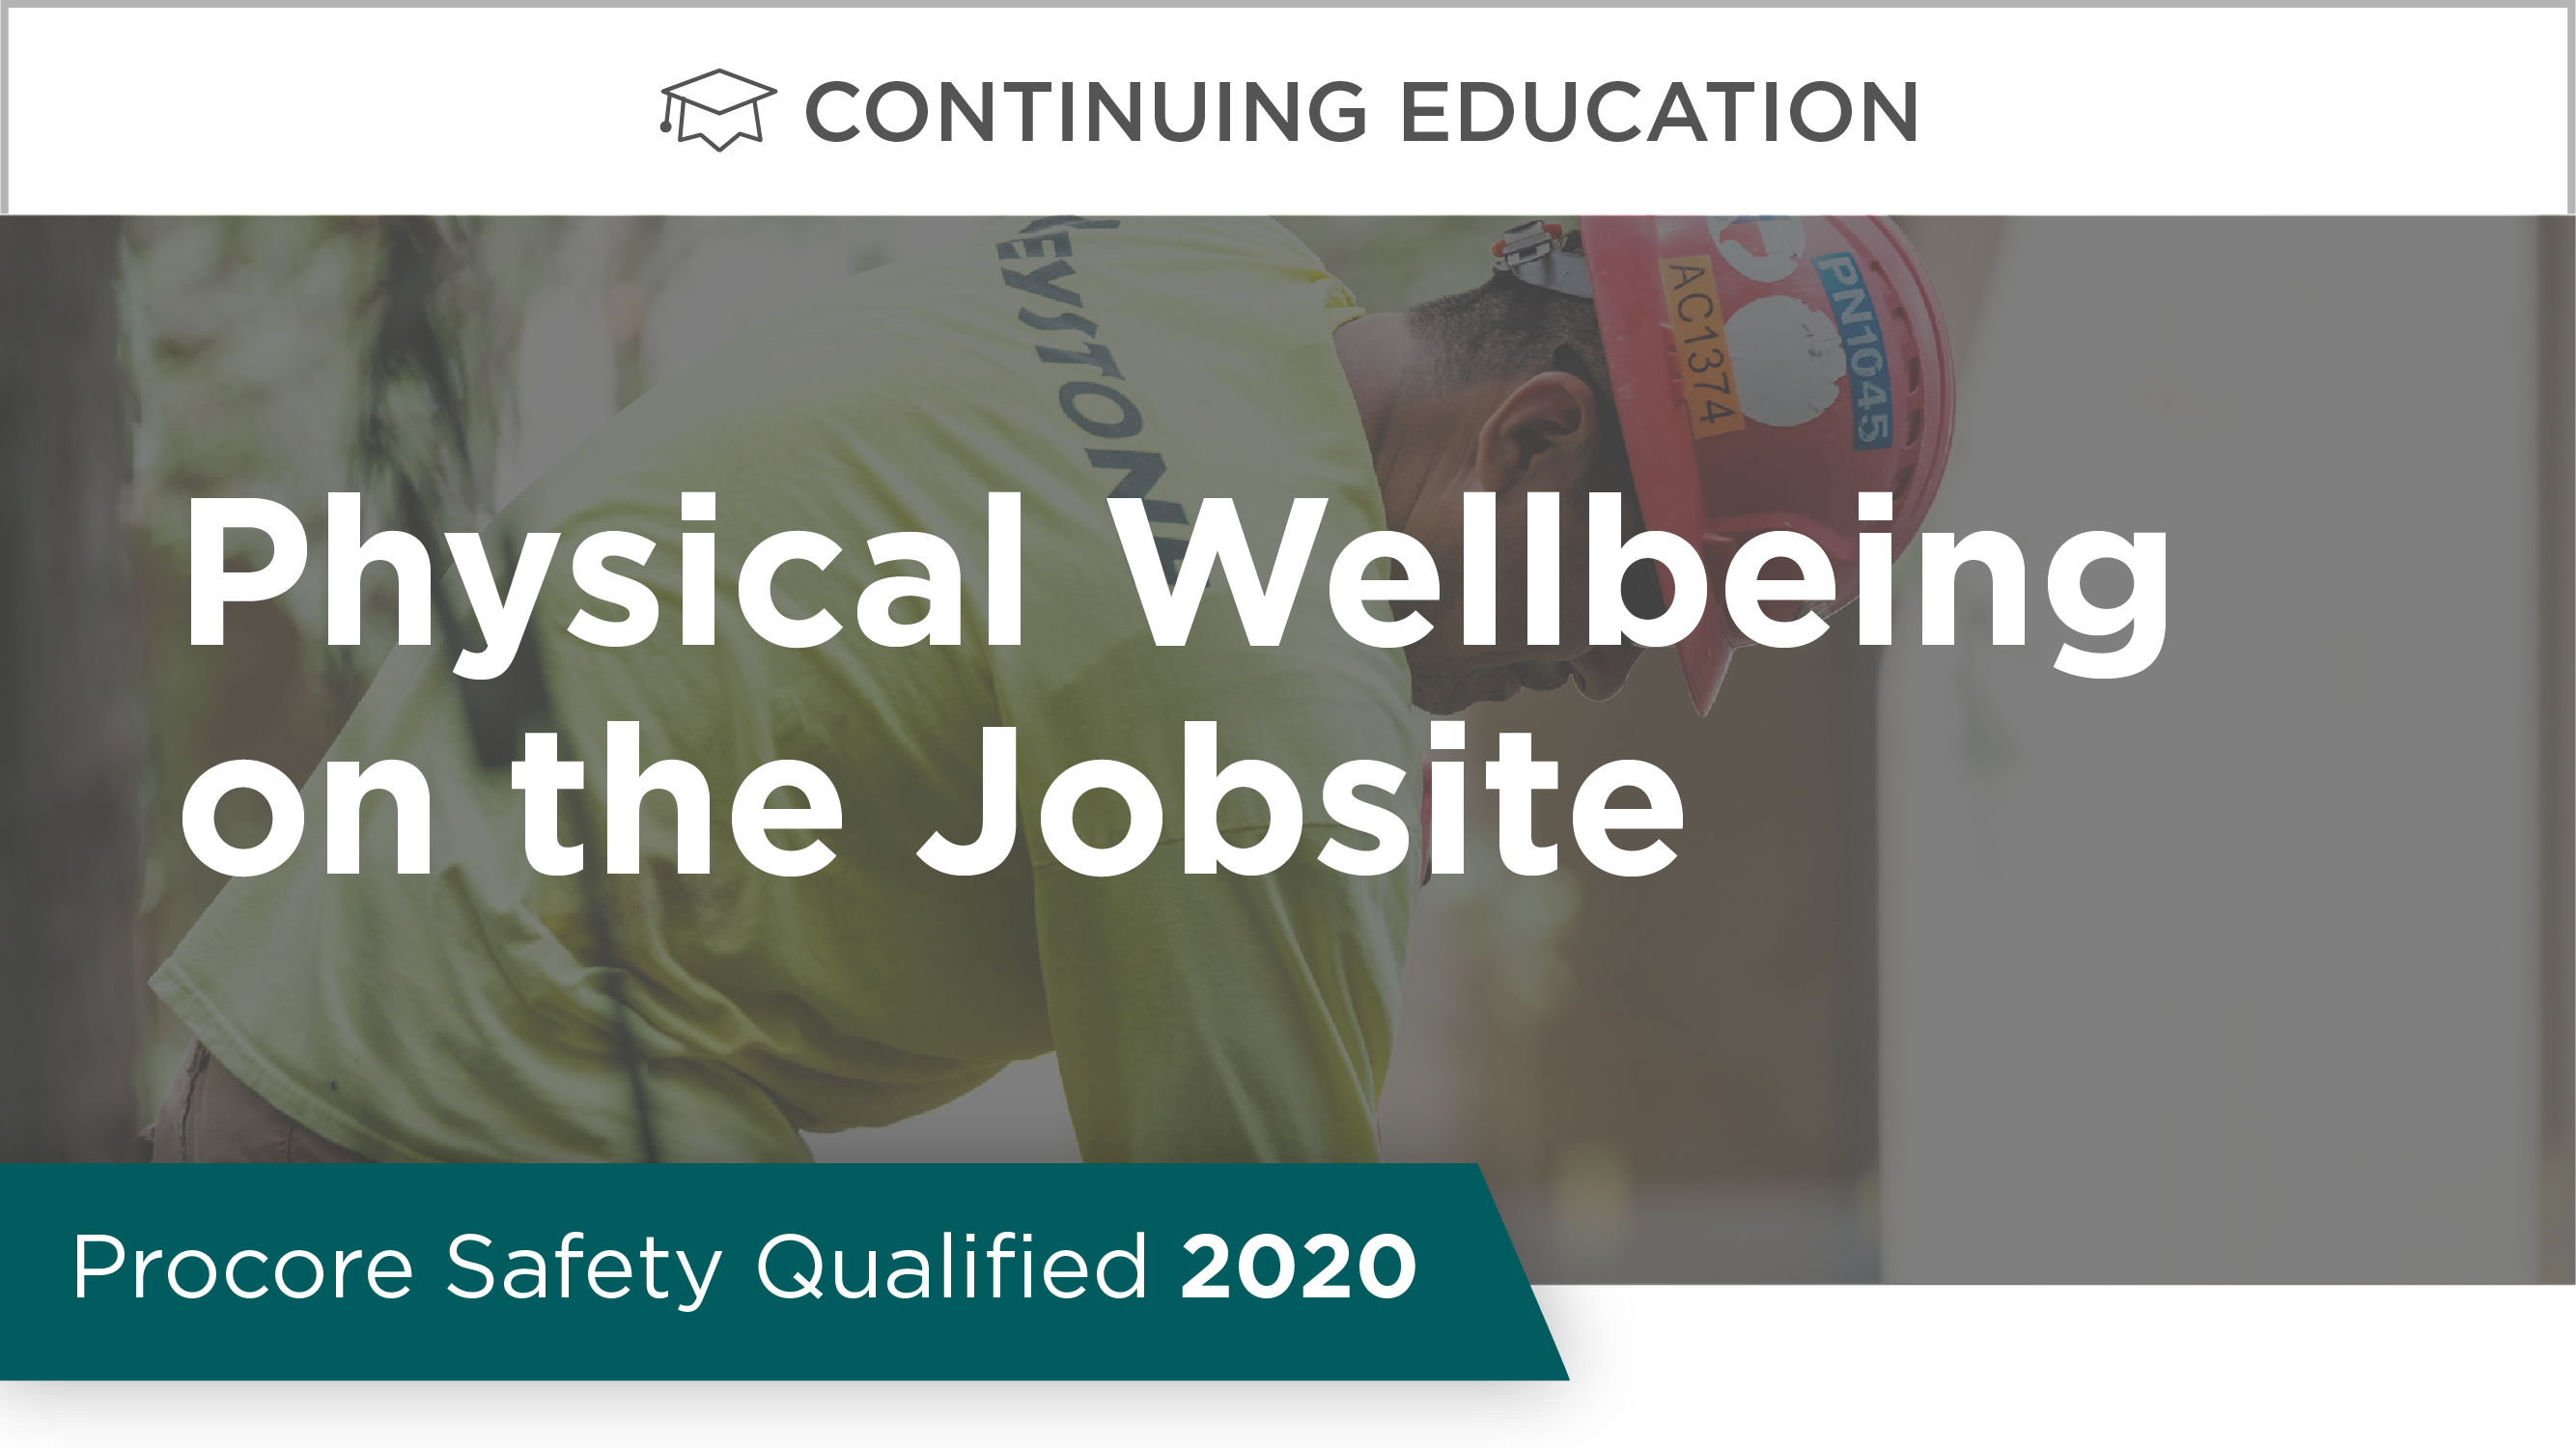 Procore Safety Qualified: Physical Wellbeing on the Jobsite